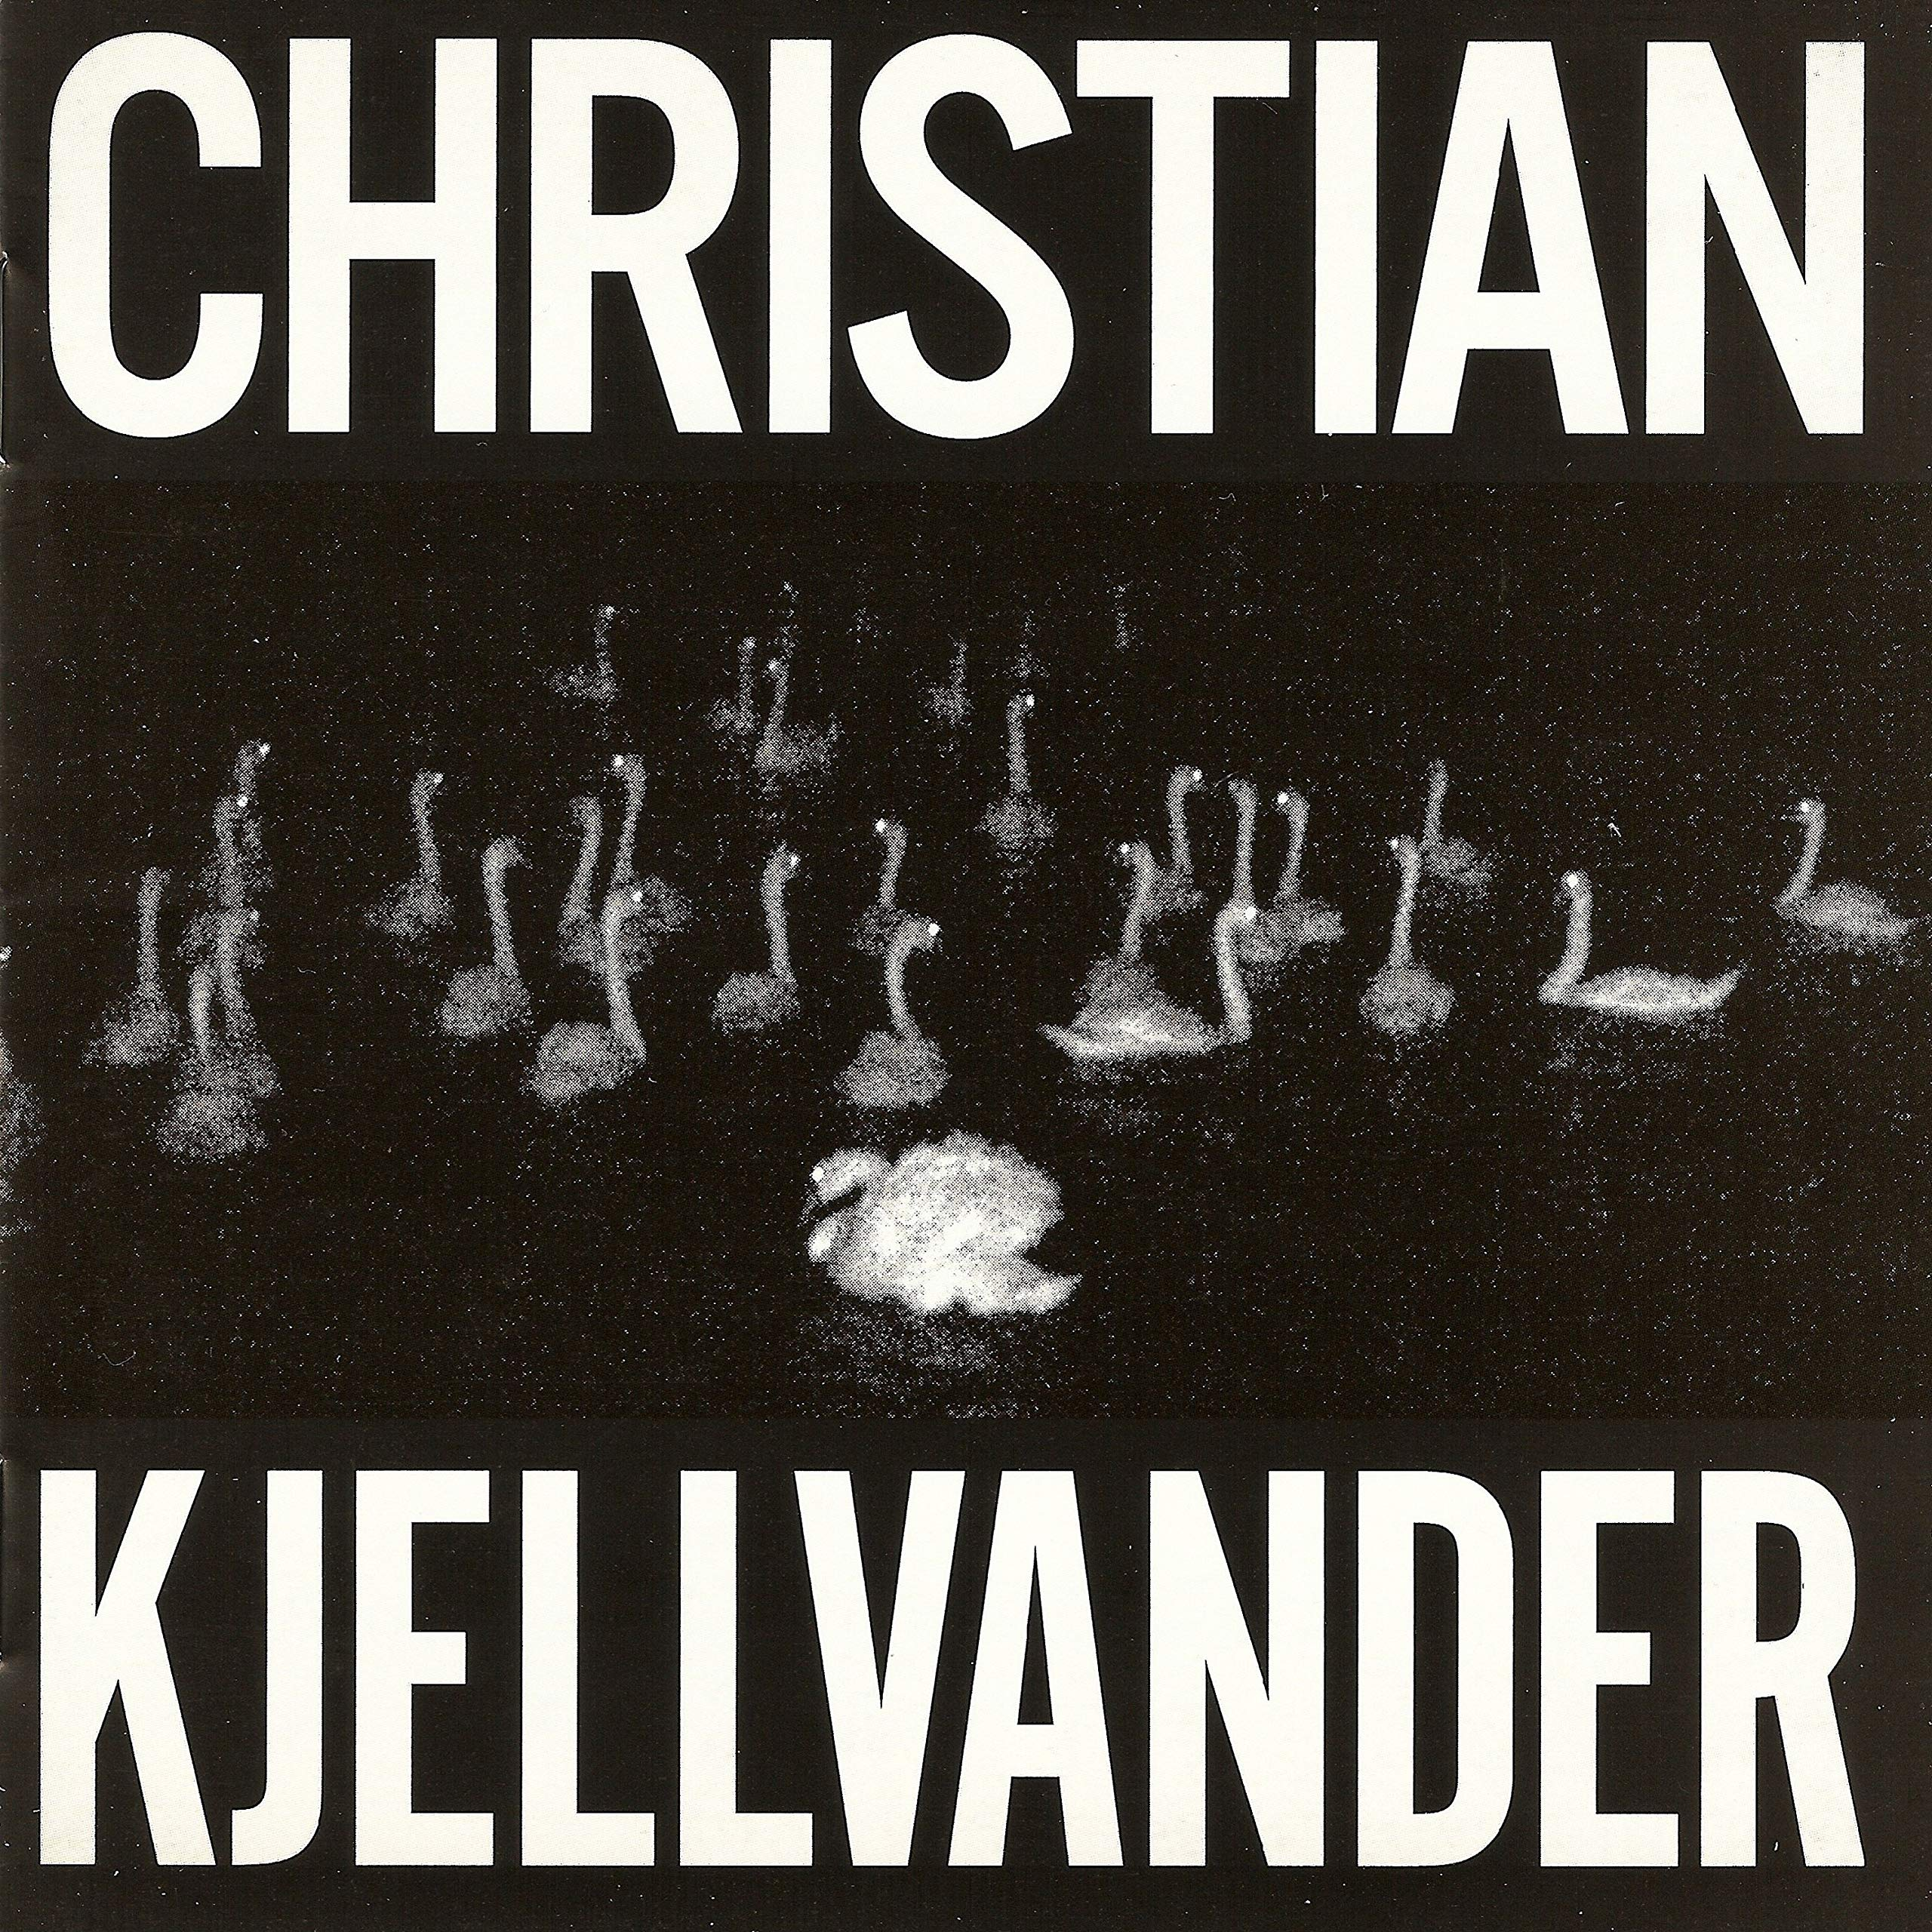 Christian Kjellvander – I Saw Her From Here / From Here I Saw Her (2007) [FLAC]